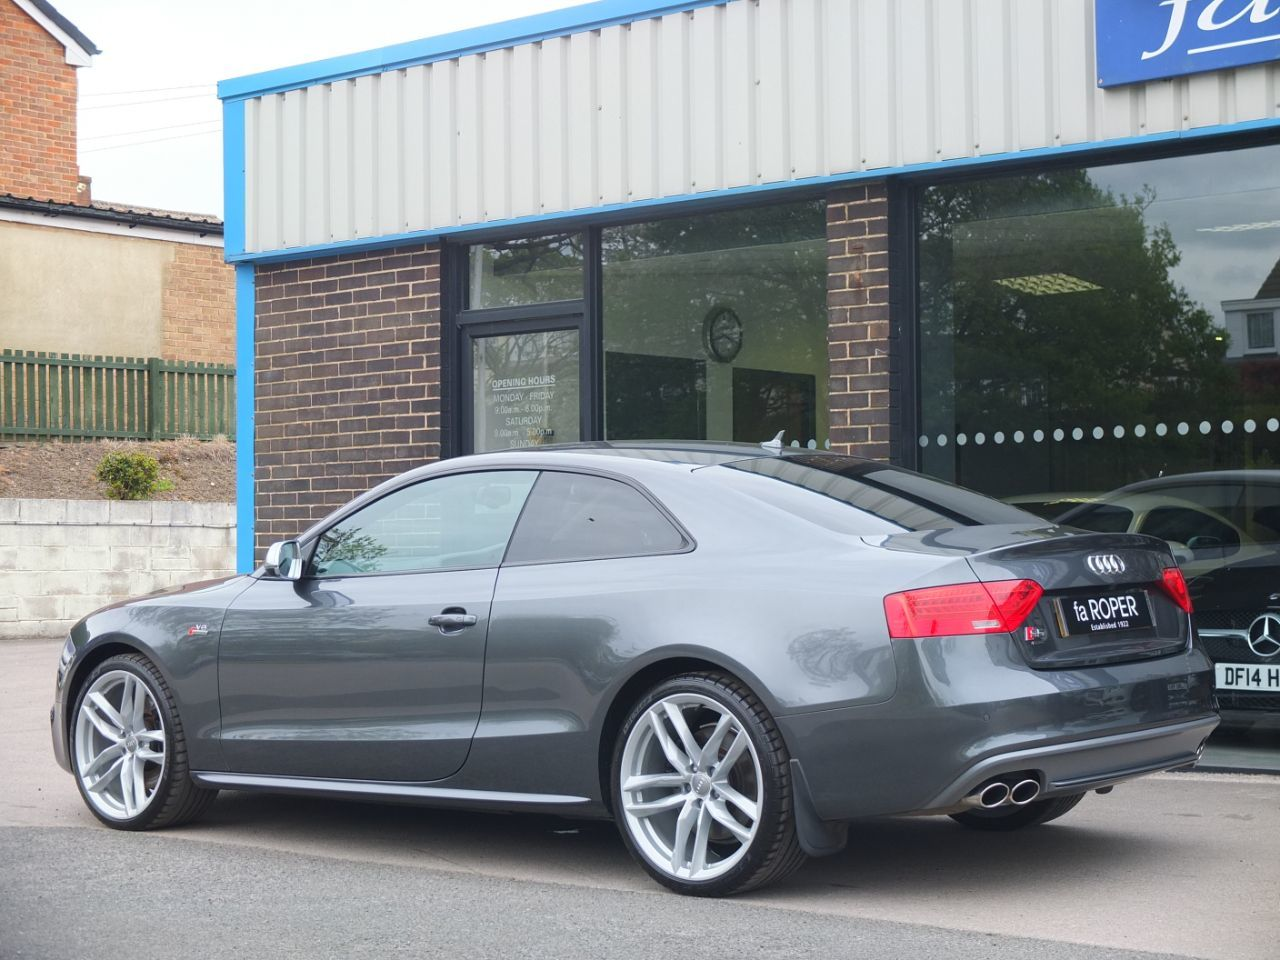 Audi A5 3.0 S5 quattro Black Edition Coupe S tronic Coupe Petrol Daytona Grey Metallic